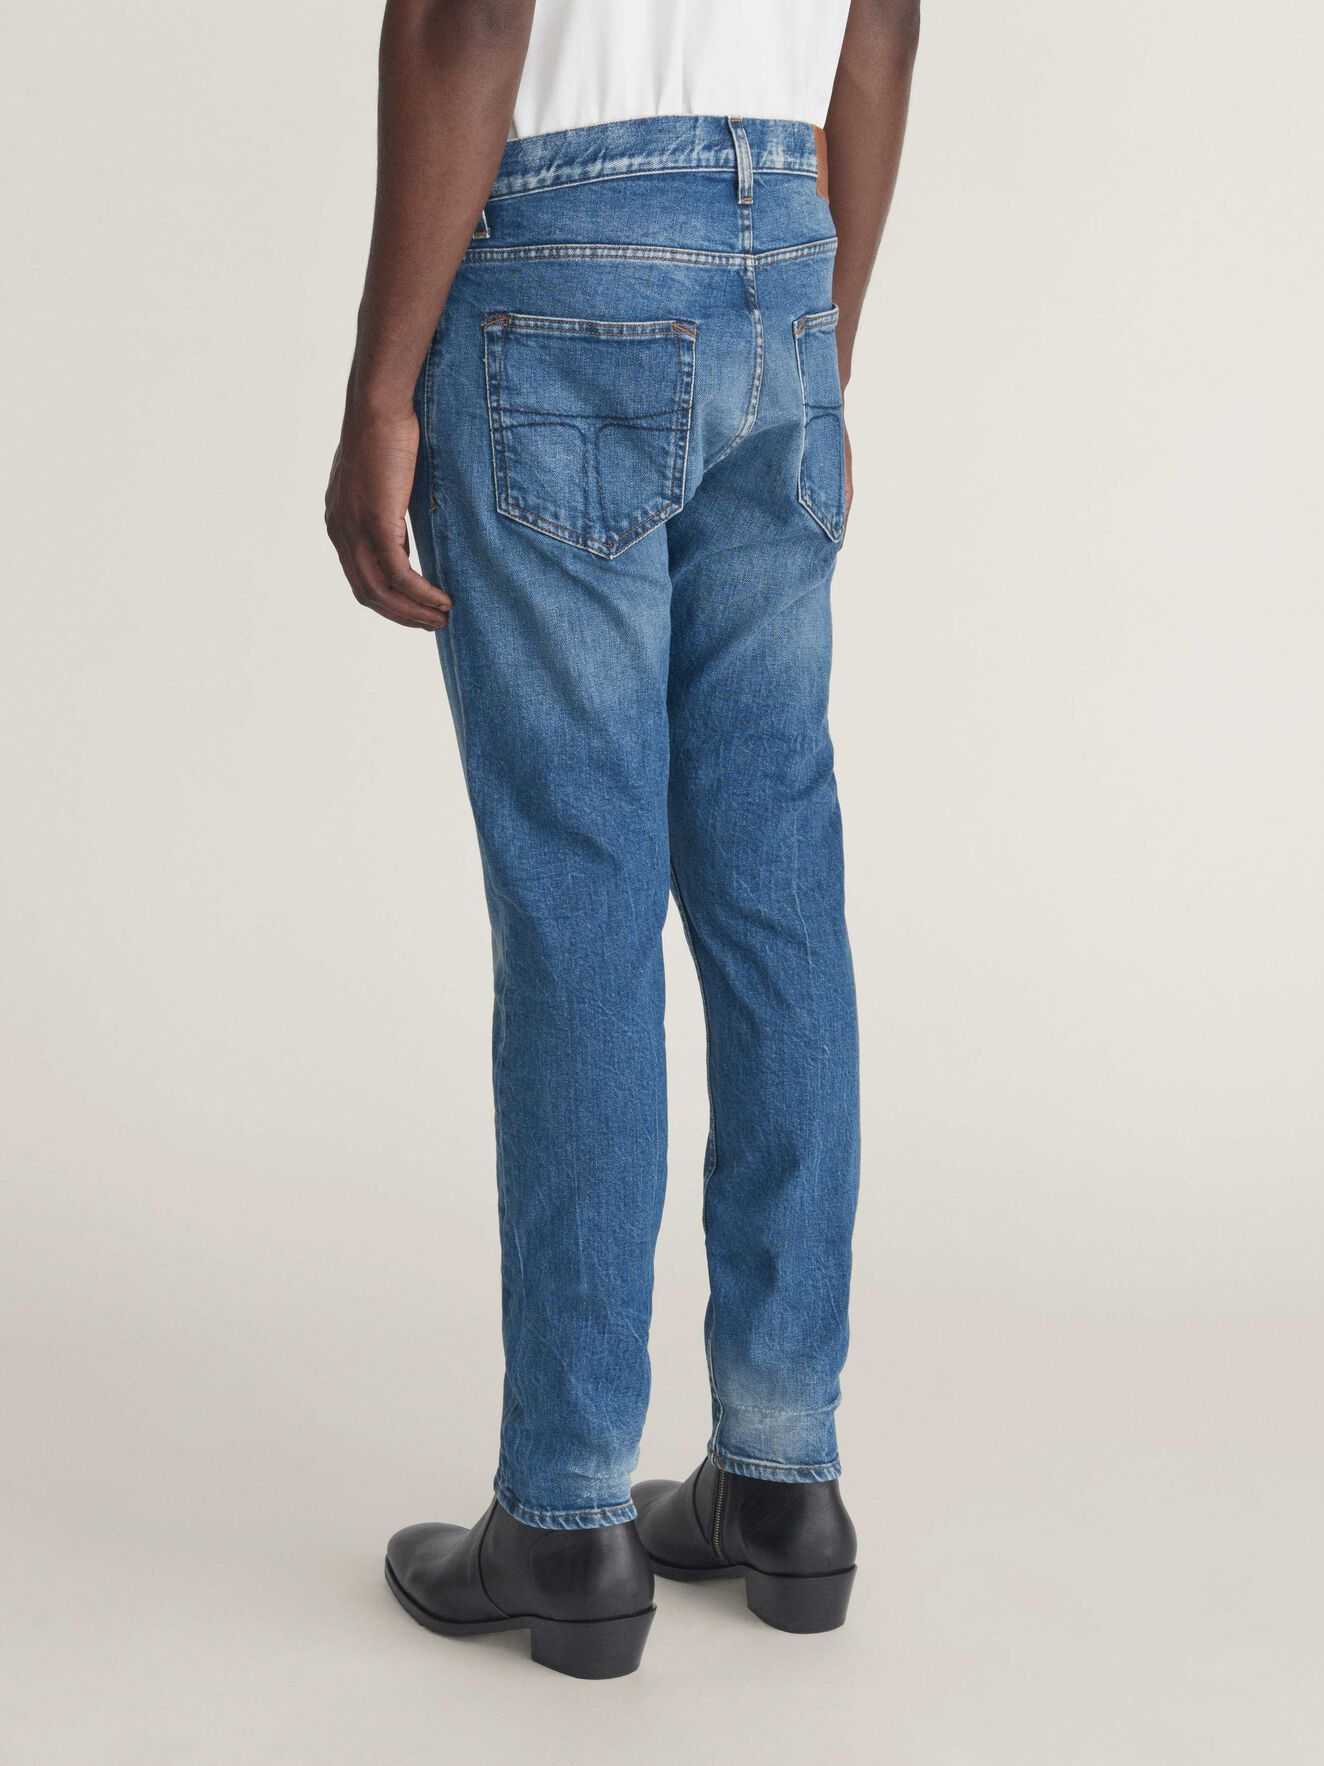 Pistolero Jeans in Medium Blue from Tiger of Sweden